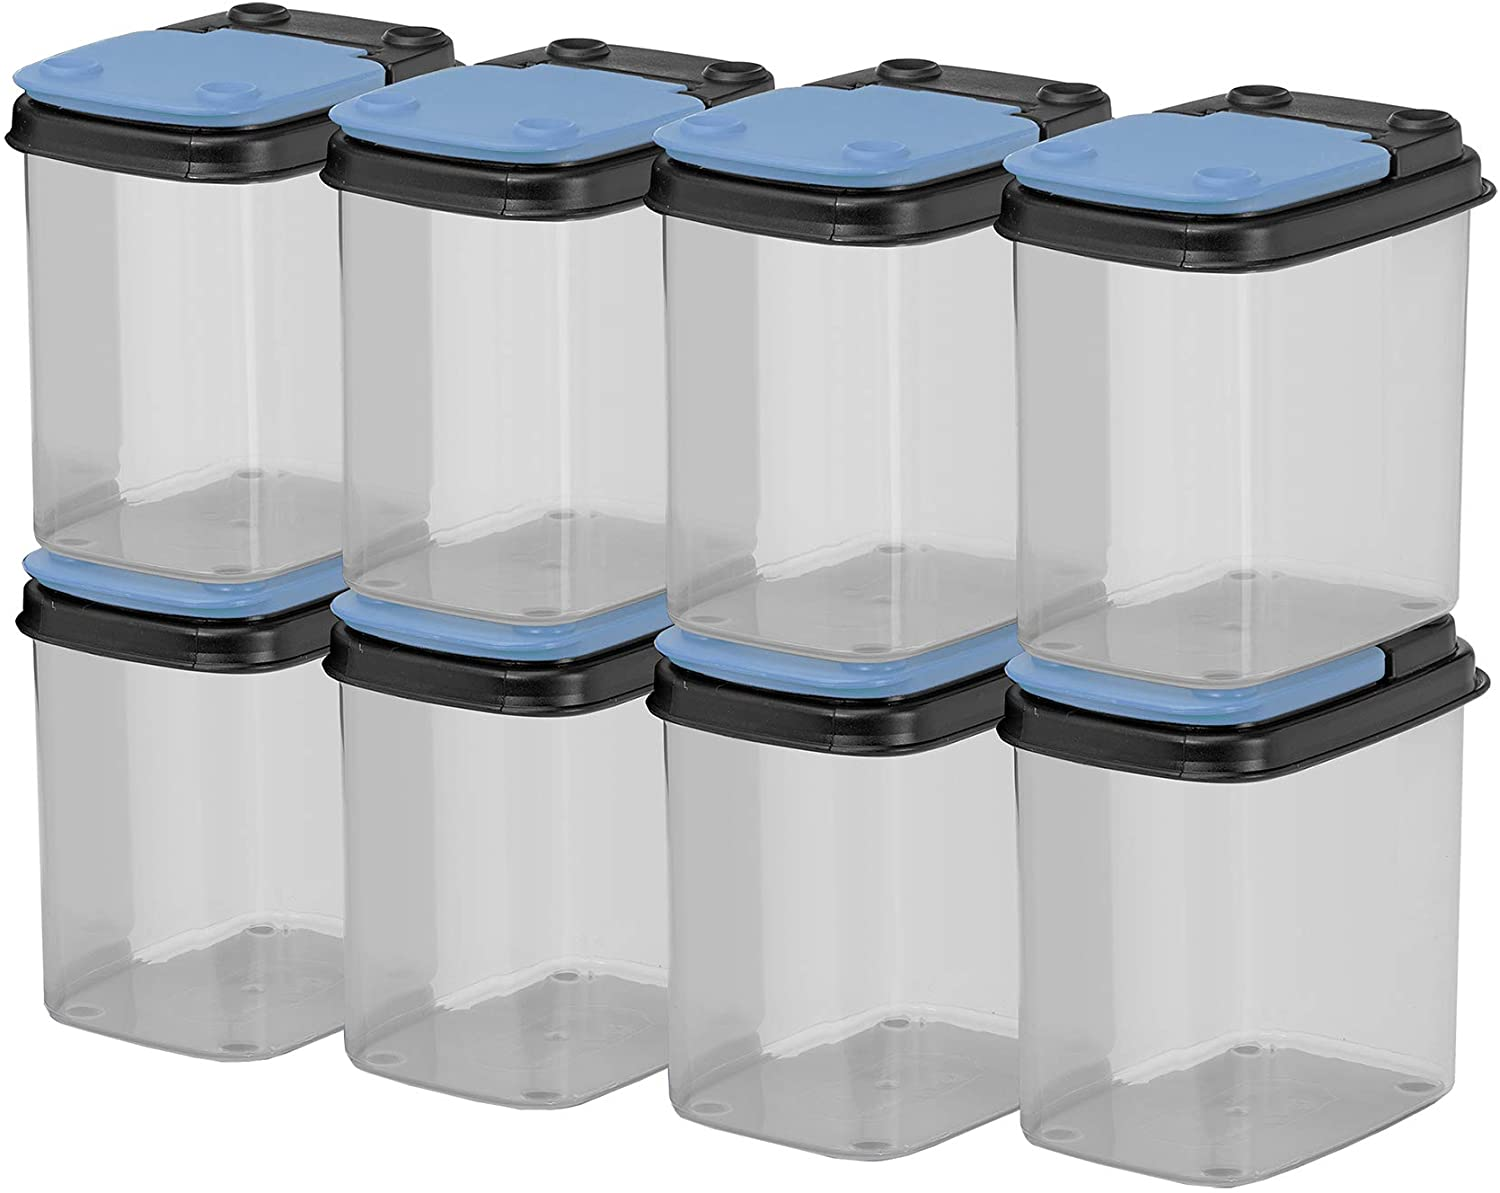 BUDDEEZ Bits and Bolts Storage Containers with Blue Lids